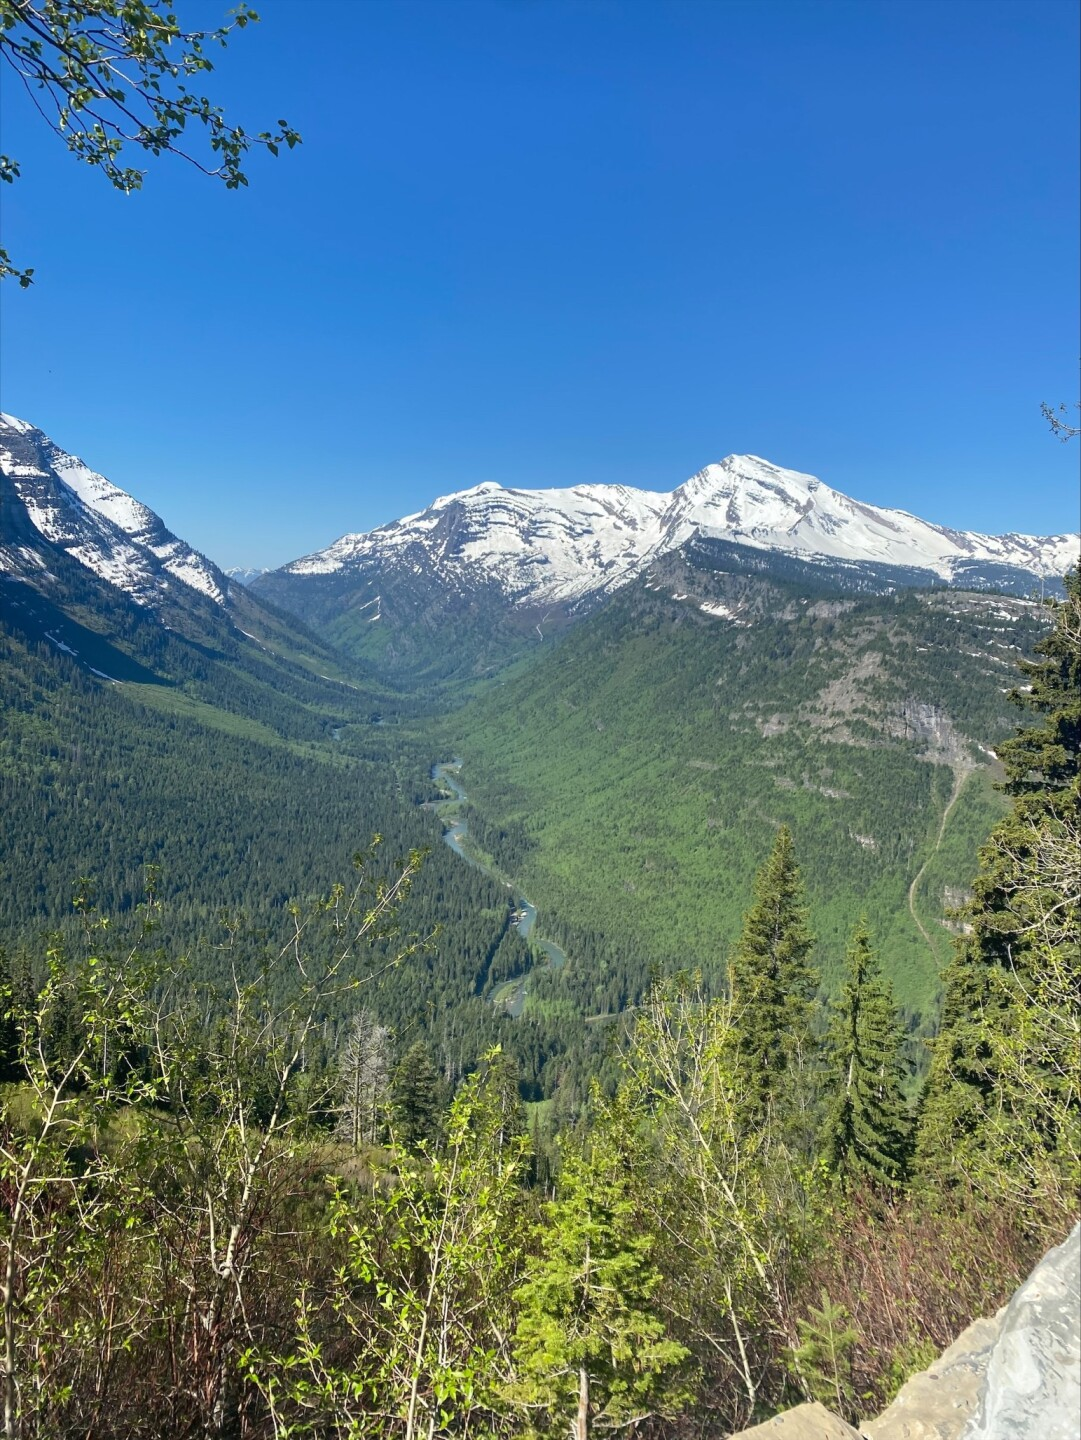 Plowing continues along Glacier National Park's Going-to-the-Sun Road